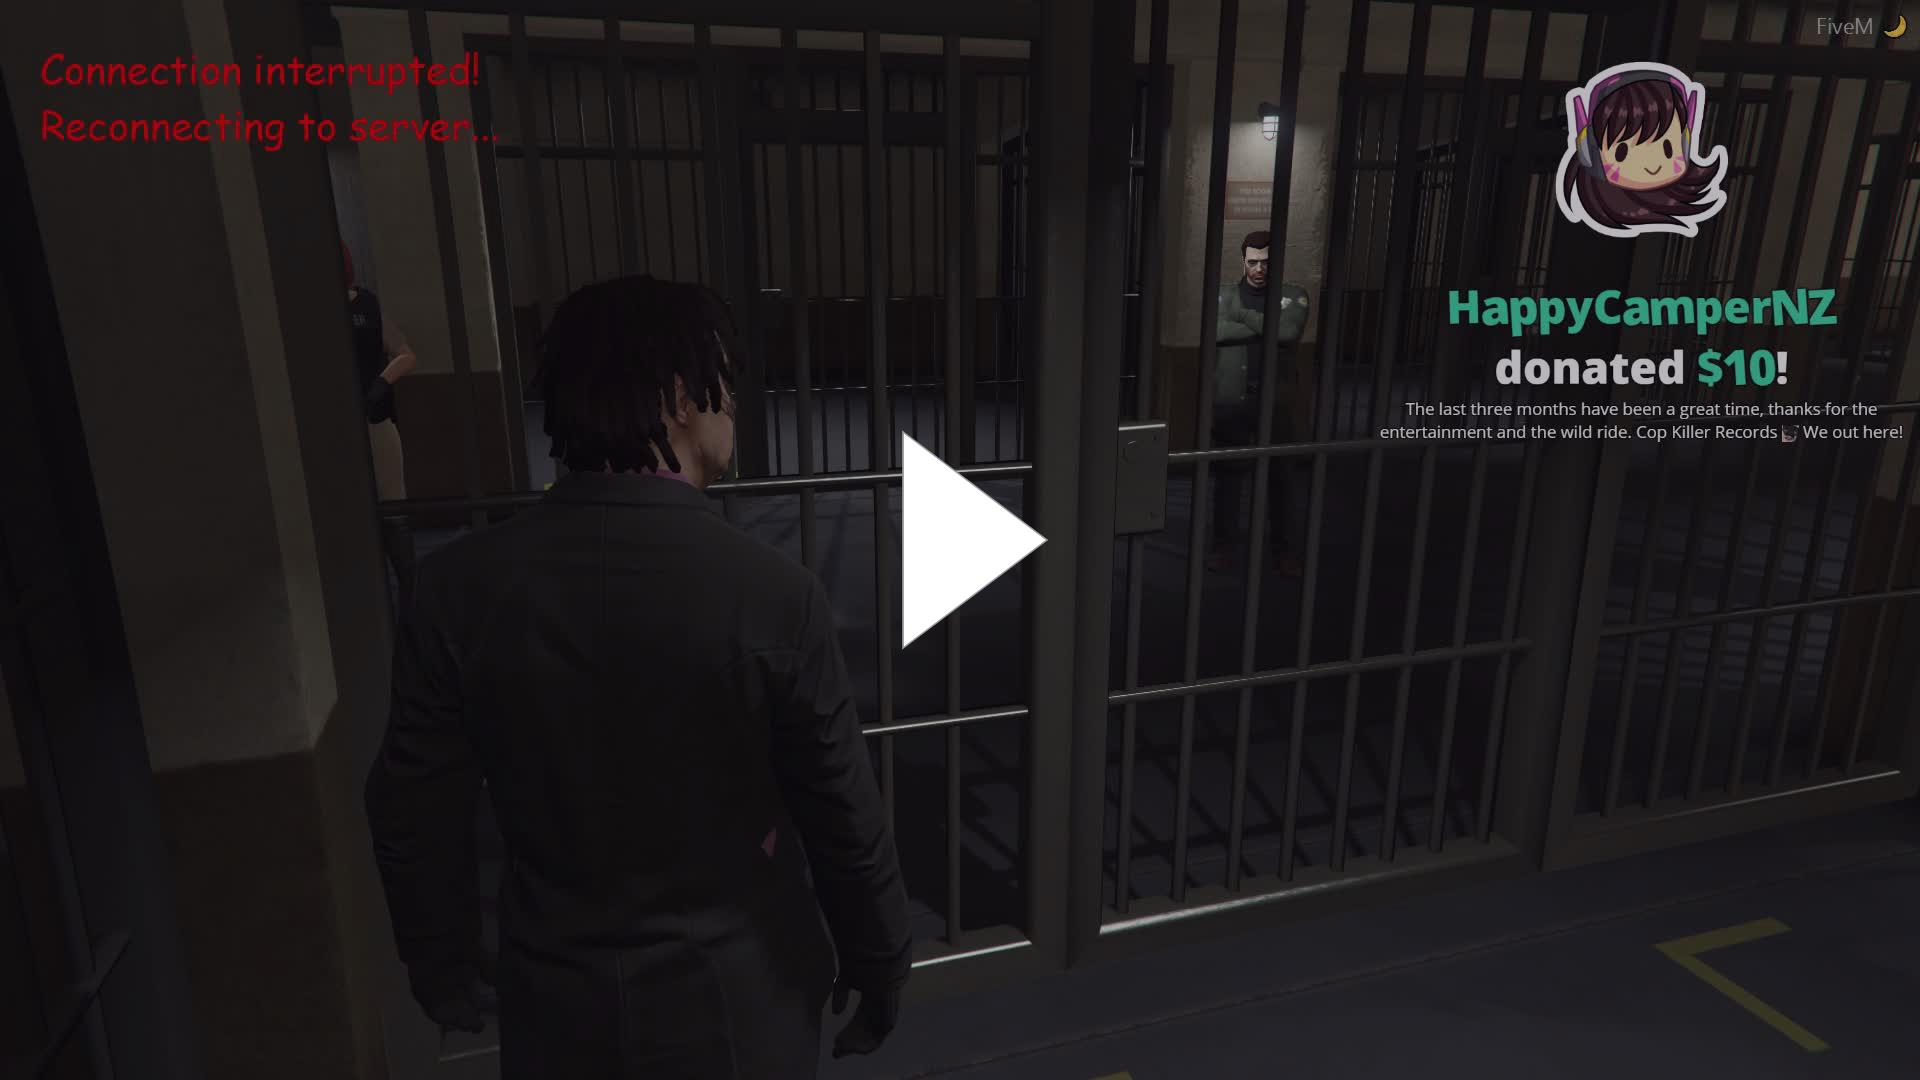 MOONMOON_OW - Special thanks to LSPD from moonmoon - Twitch